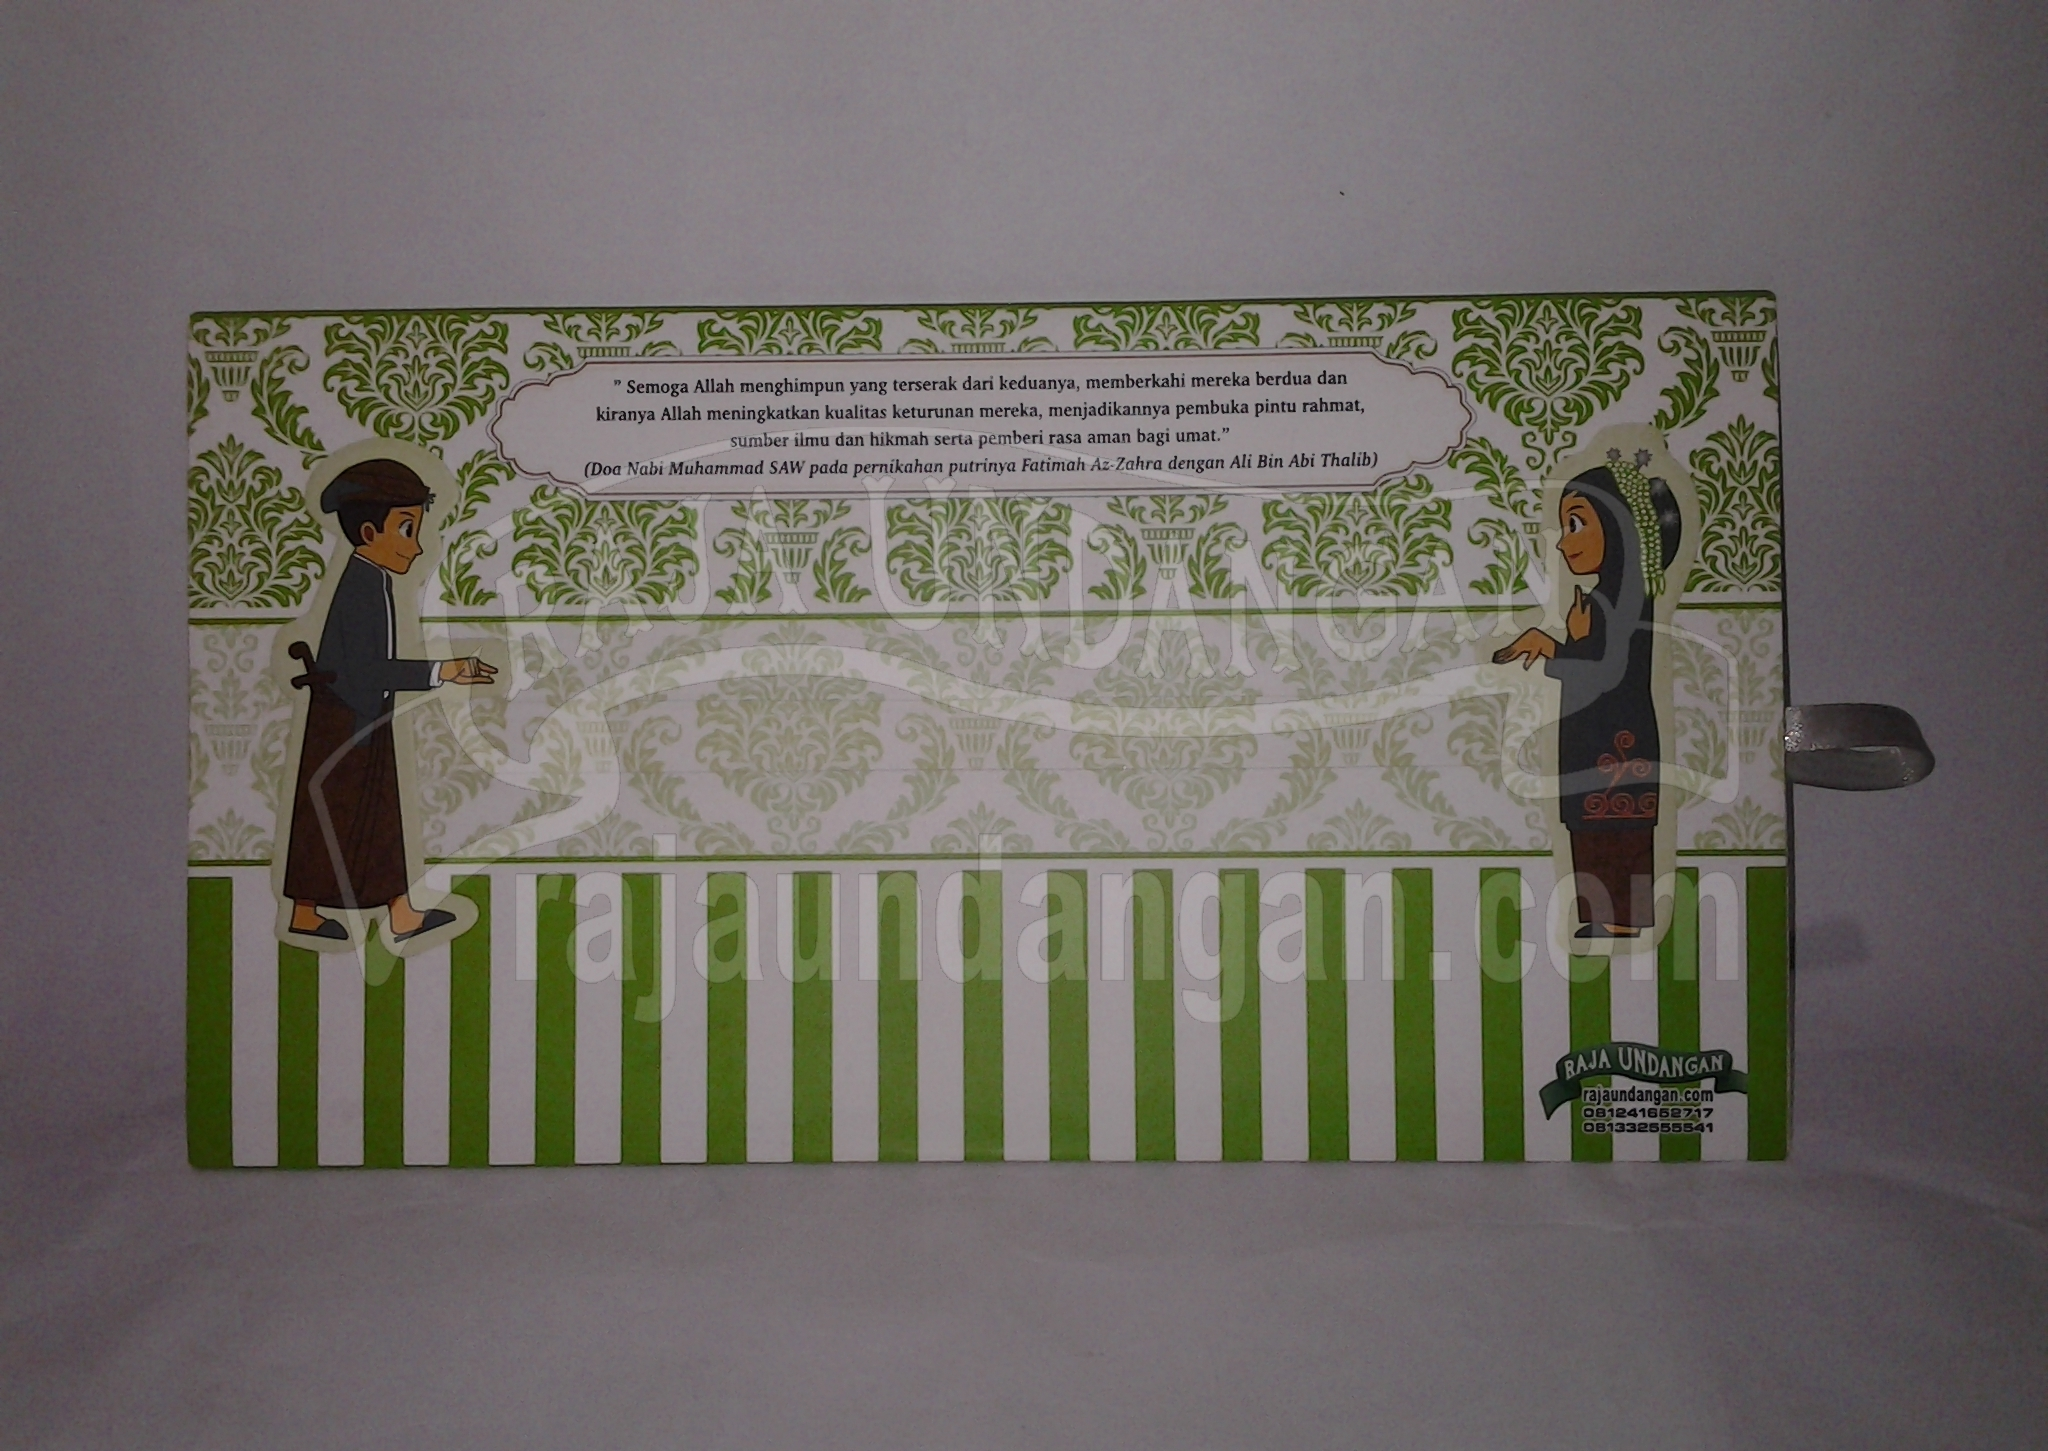 20131009 104005 - Percetakan Wedding Invitations Unik dan Simple di Simomulyo